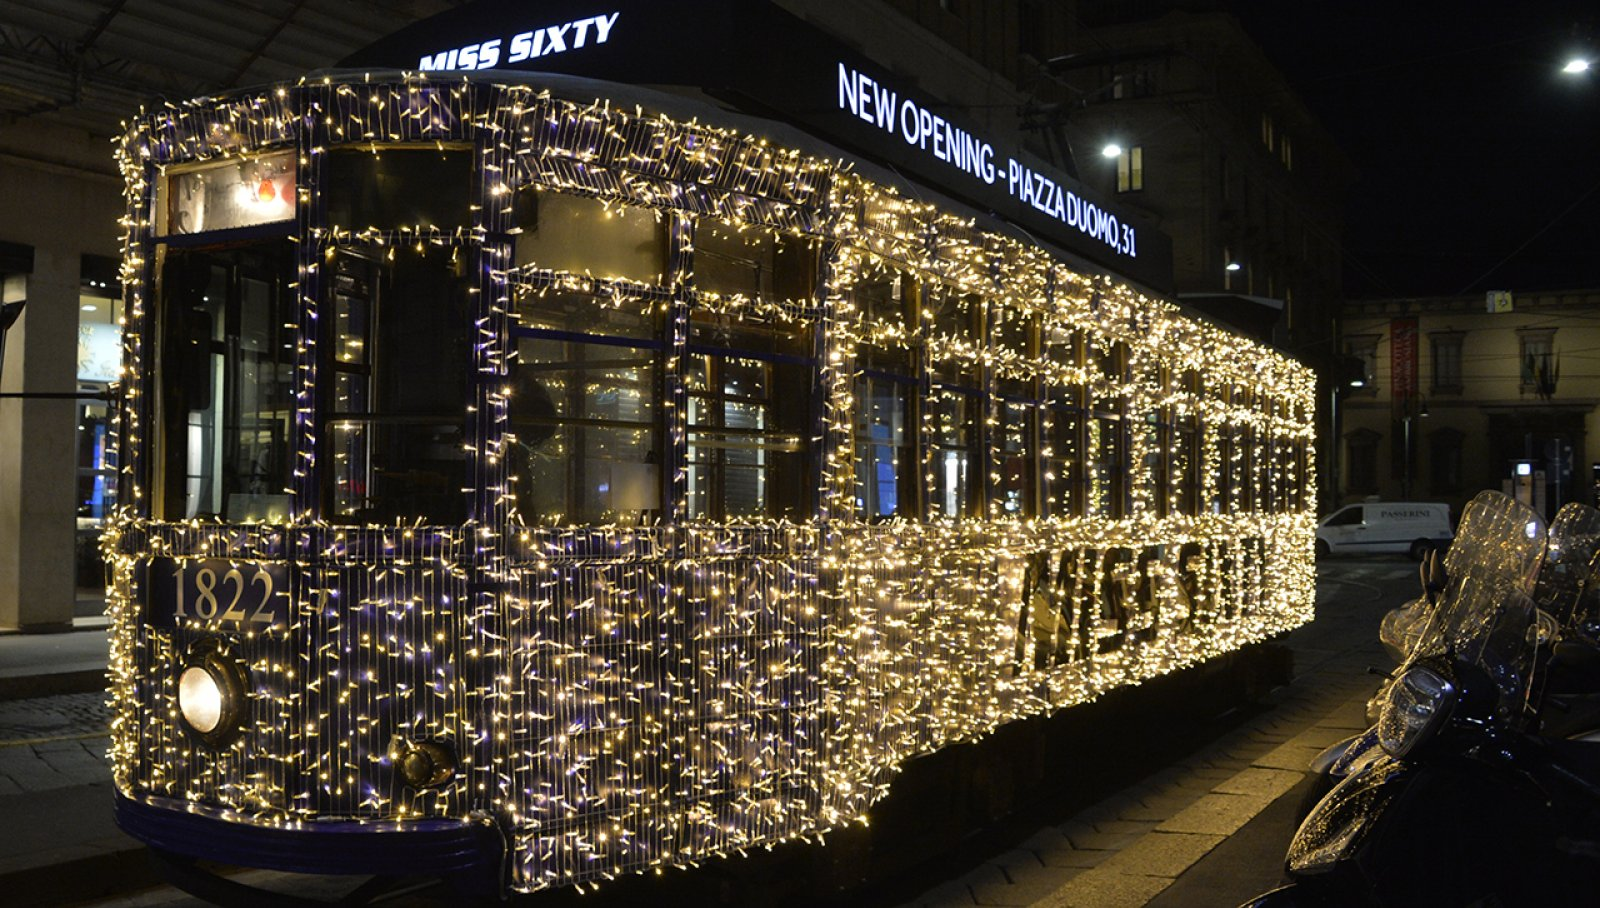 Tram luci Milano IGPDecaux per Miss Sixty